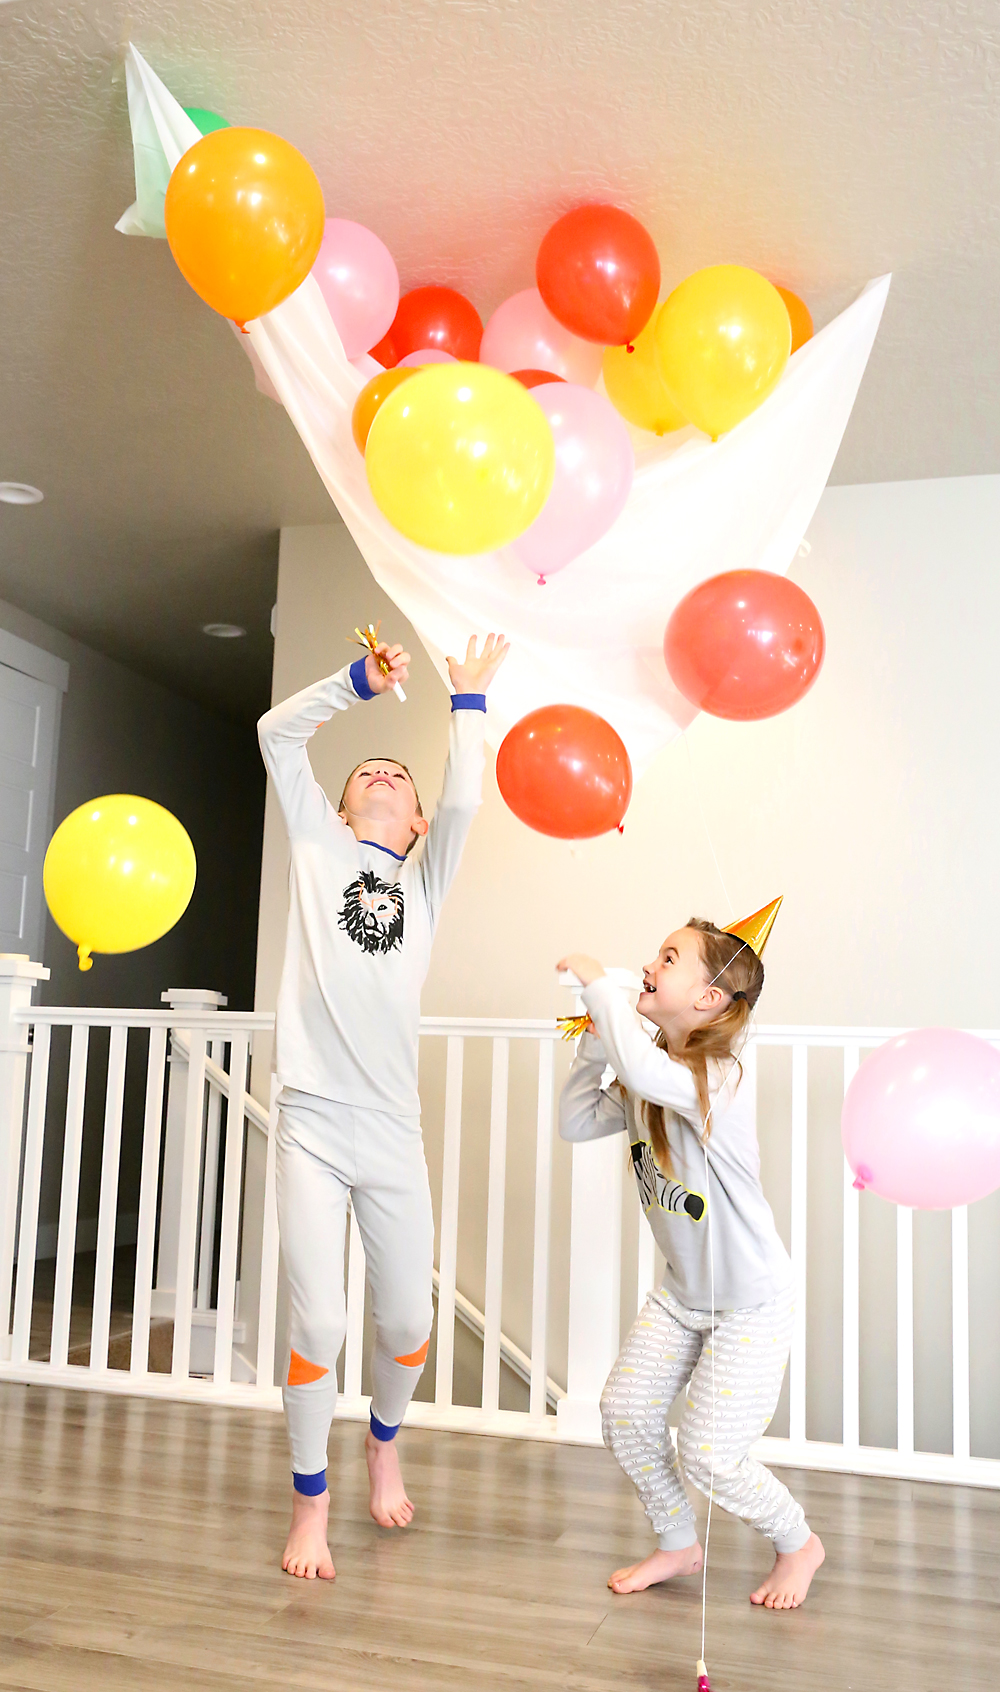 Awesome New Year Eve activities for kids and families. A great New Years Party crafts, activities, snacks, and more! #newyearseve #kidsnewyearseve #NewYearsFamily #familyfun